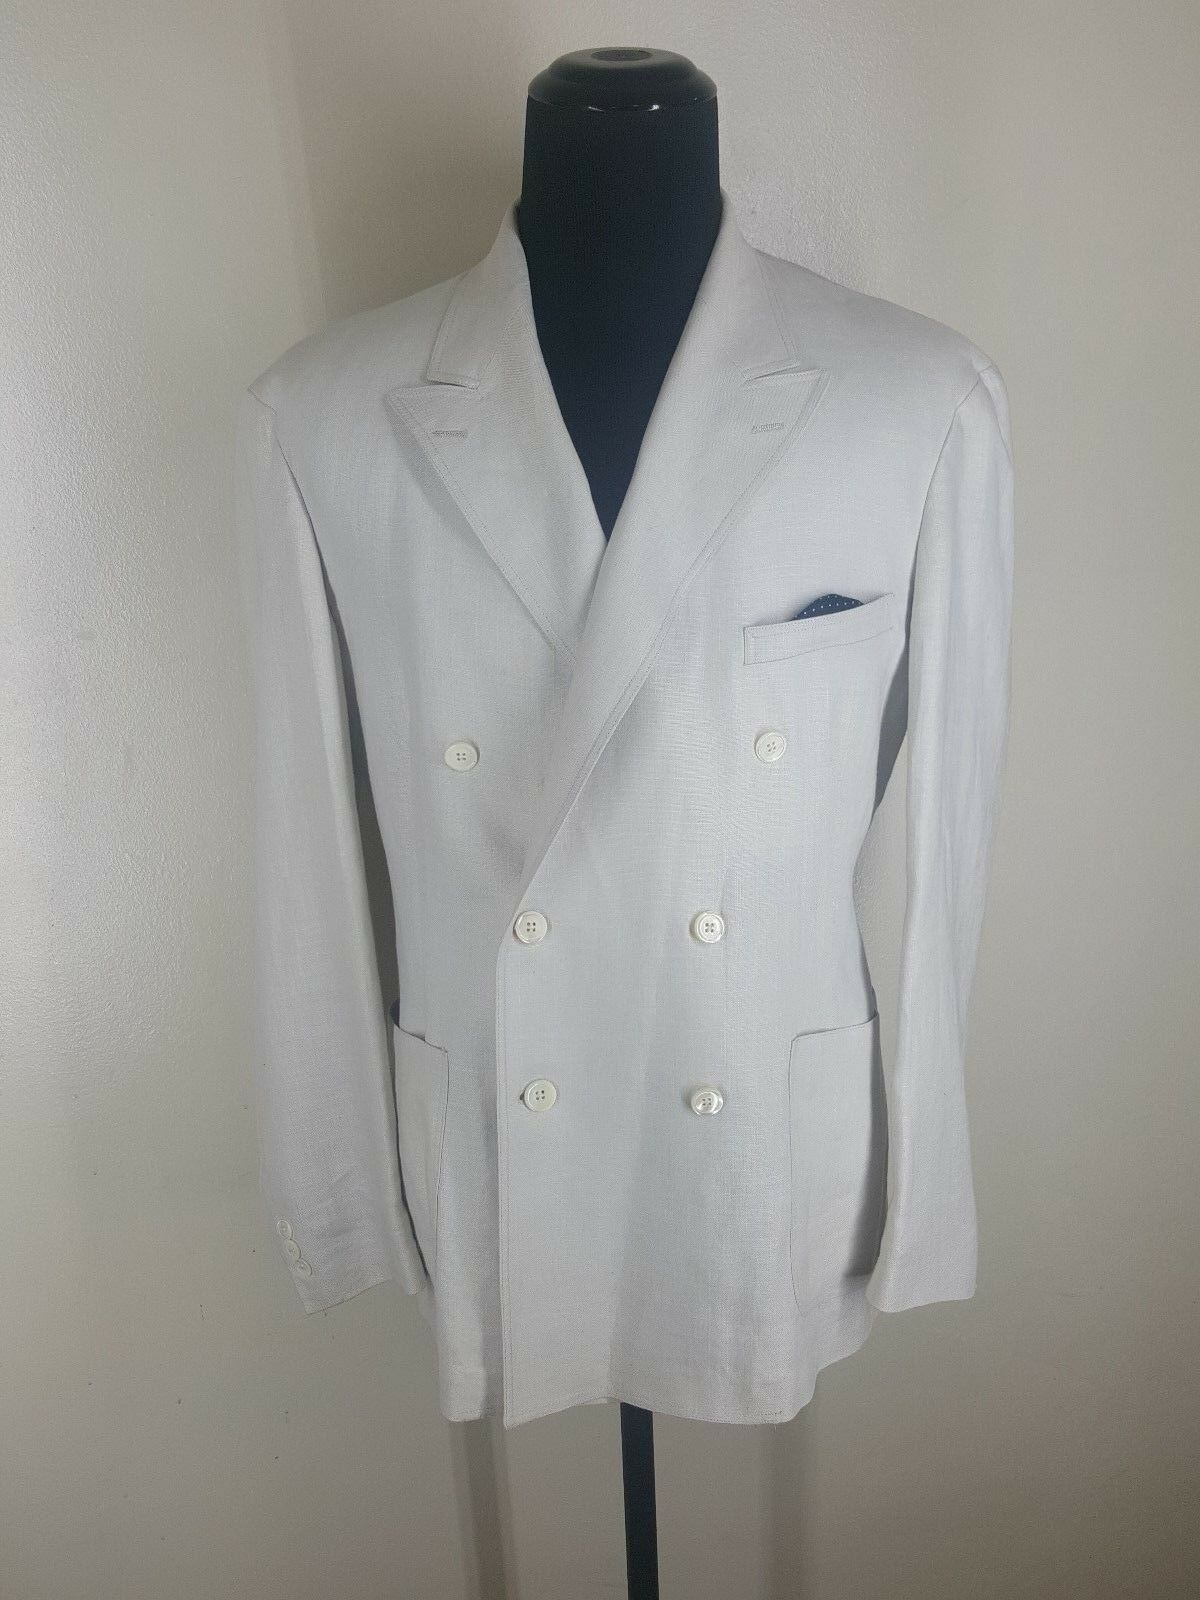 RALPH LAUREN RRL Made In USA 100% Linen Double Breasted Blazer No Vents 44-46 R